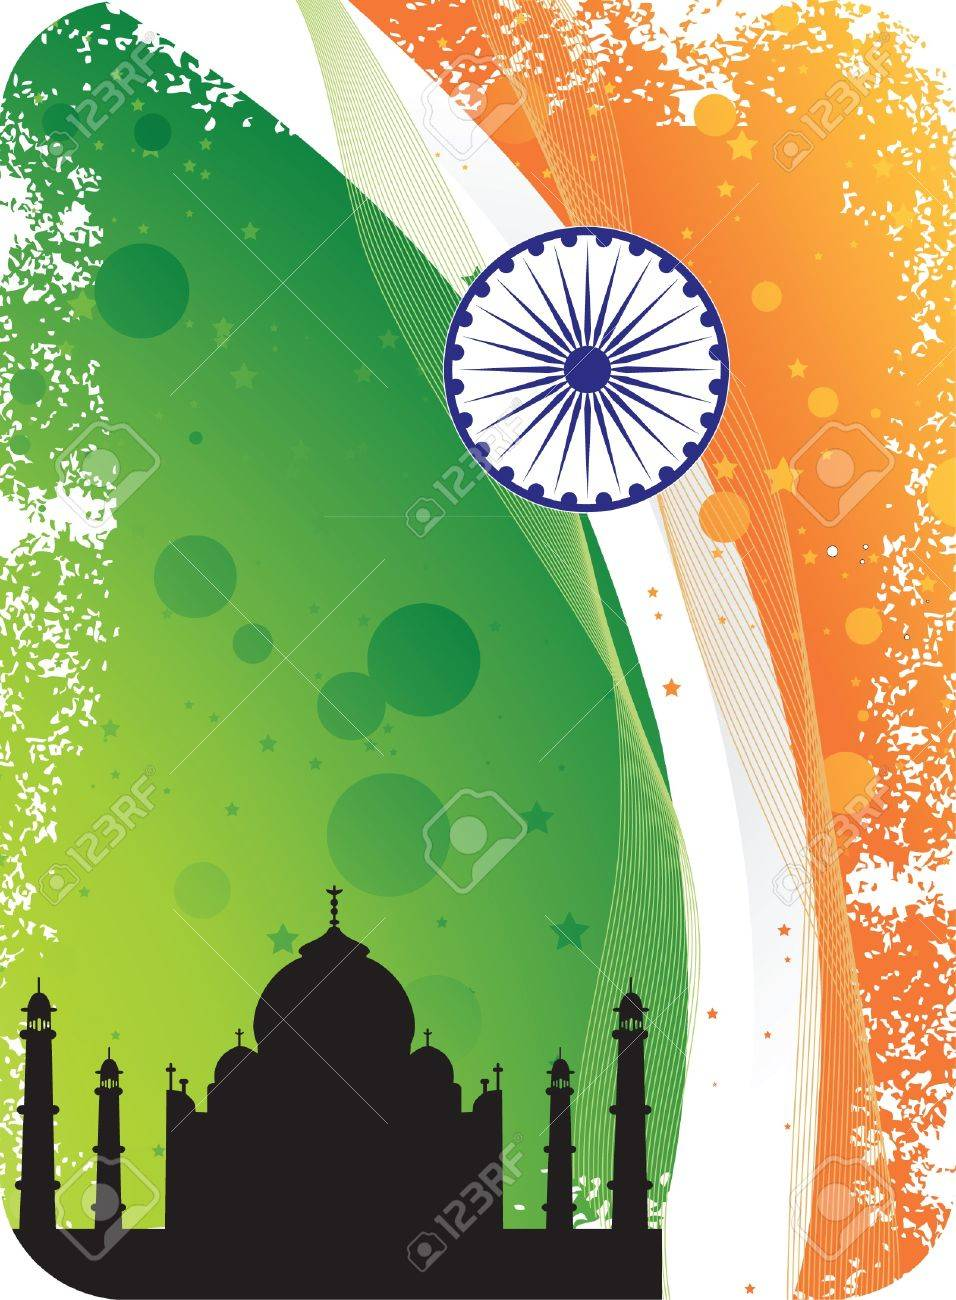 http://previews.123rf.com/images/krishnasomya/krishnasomya1202/krishnasomya120200014/12711966-Silhouette-of-Taj-Mahal-on-Indian-flag-background-Stock-Vector-india.jpg